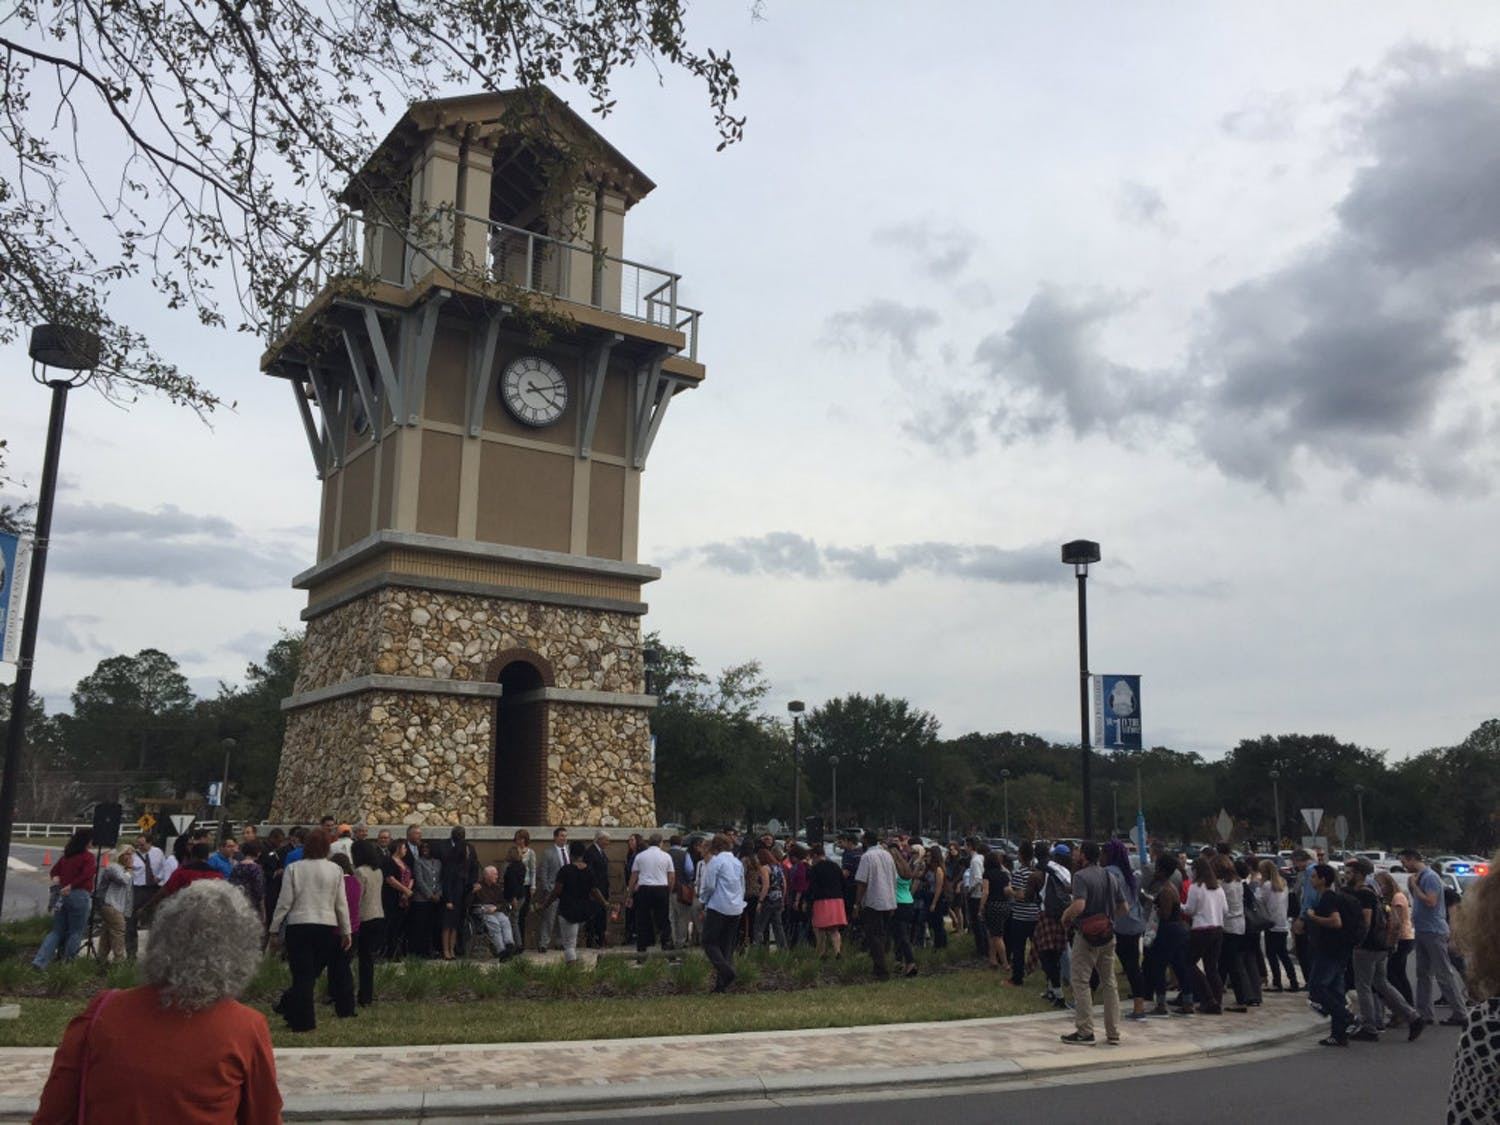 Pictured is the Santa Fe College clock tower.